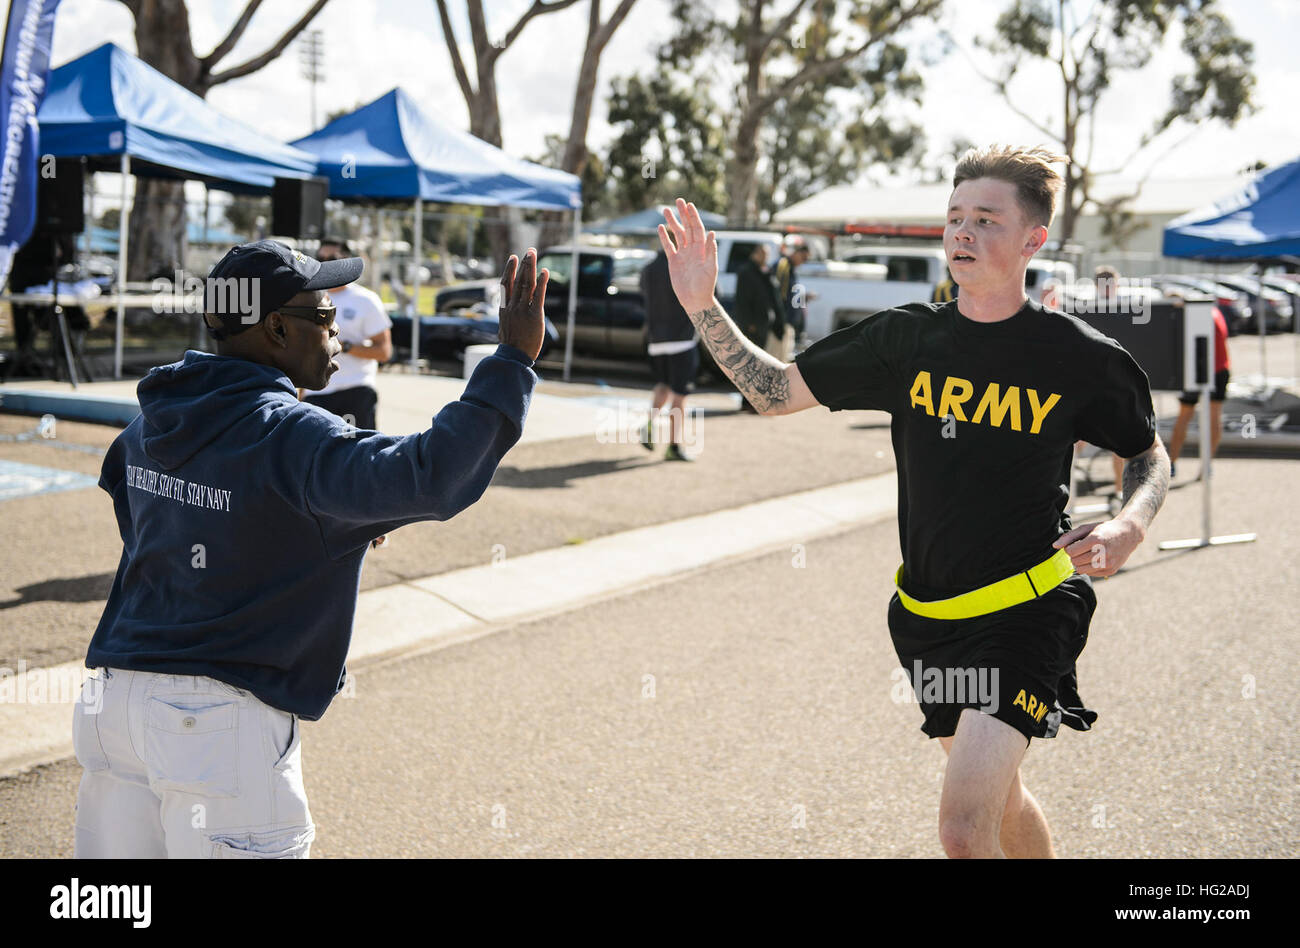 NAVAL BASE SAN DIEGO (Nov. 10, 2015)  Servicemembers cheer each other on during an MWR Veterans Day run or walk. - Stock Image